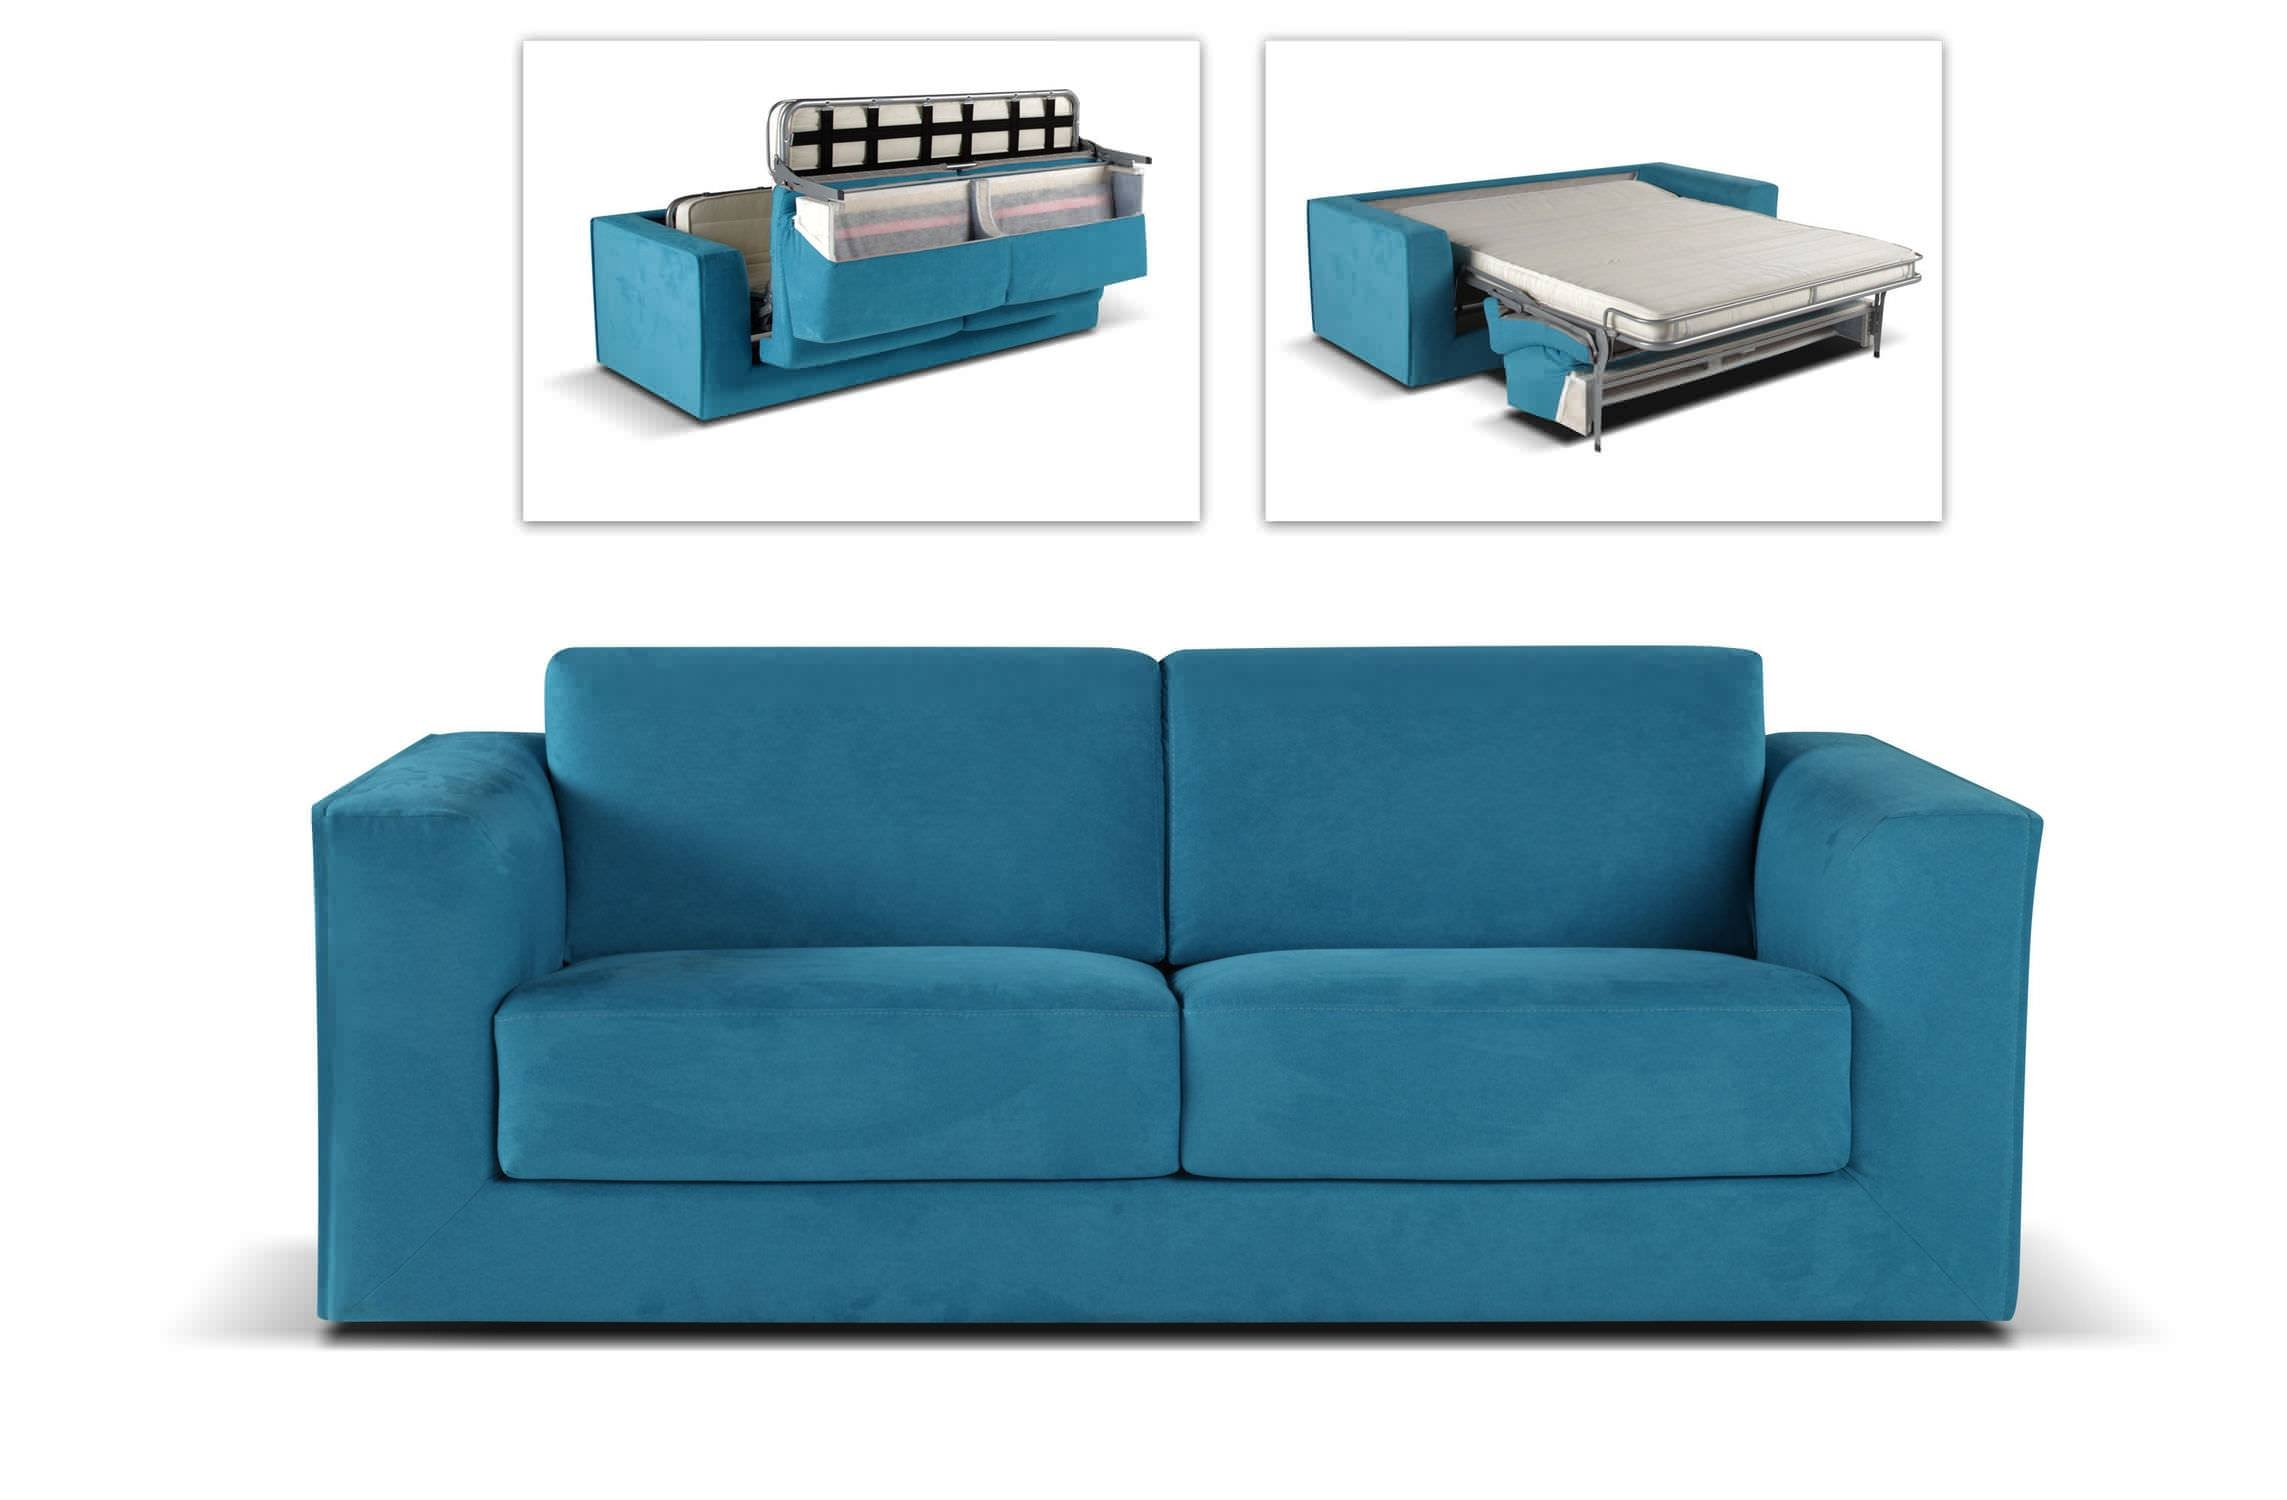 Target Futon Sofa Bed 97 With Target Futon Sofa Bed | Jinanhongyu for Target Couch Beds (Image 15 of 15)